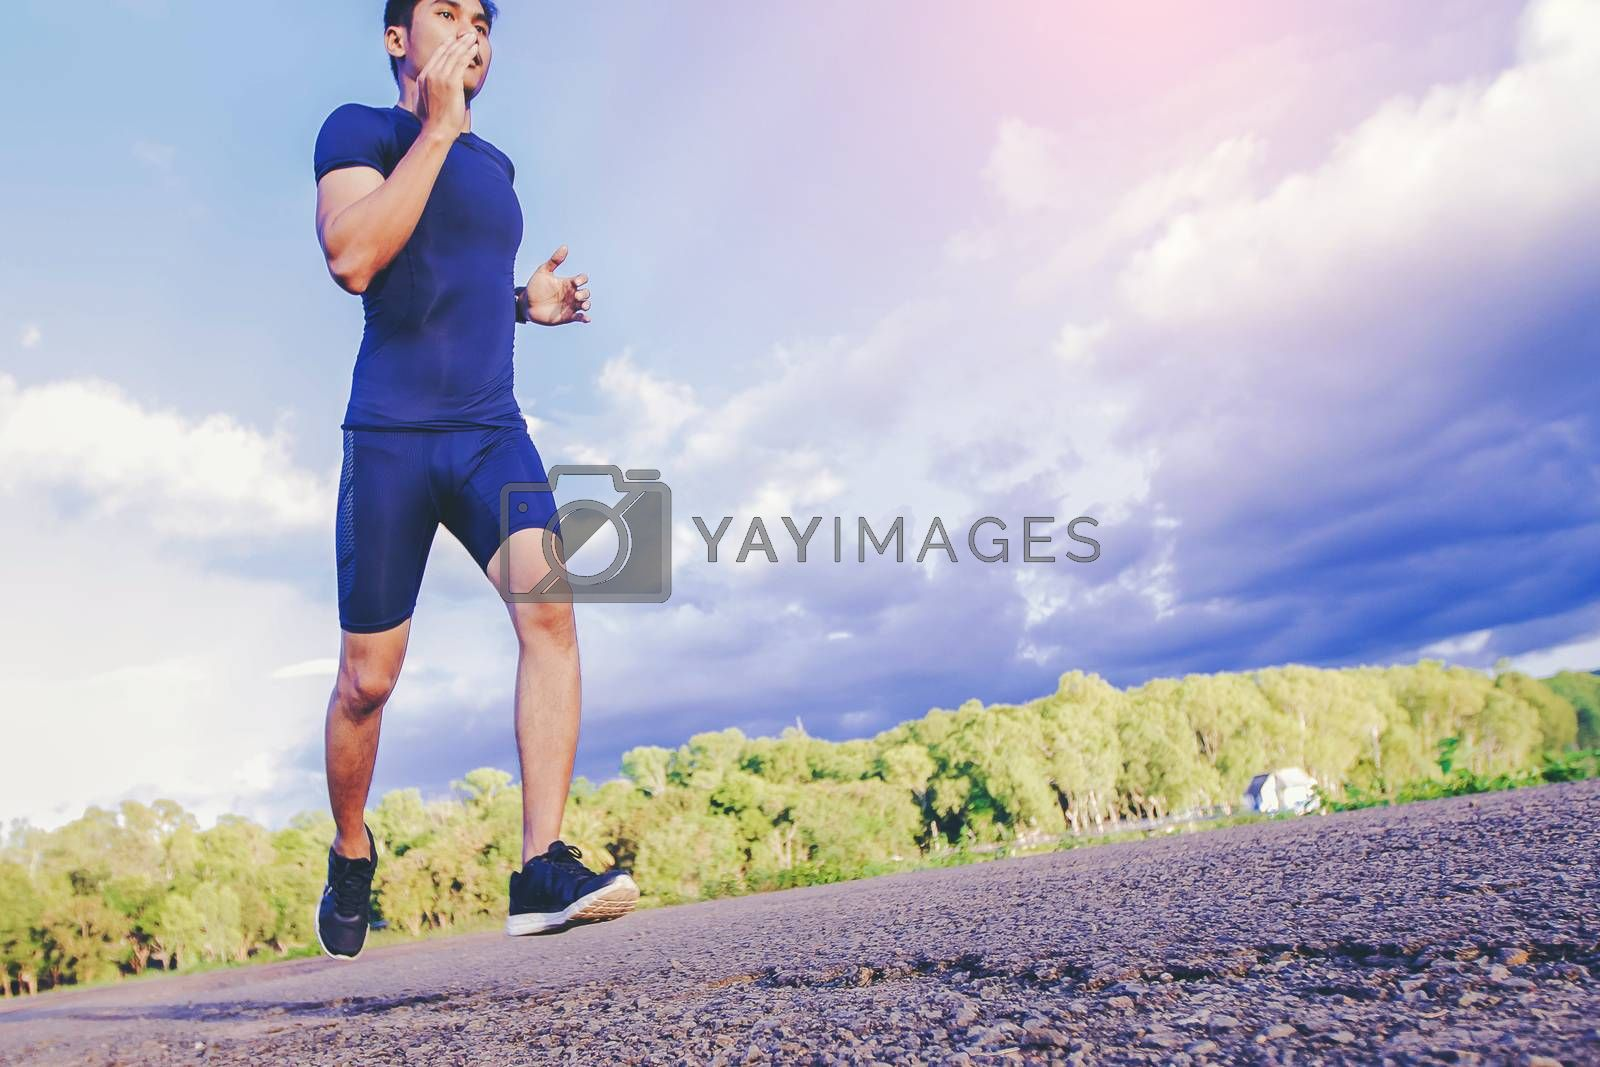 handsome man running on a rural road during sunset by numberone9018